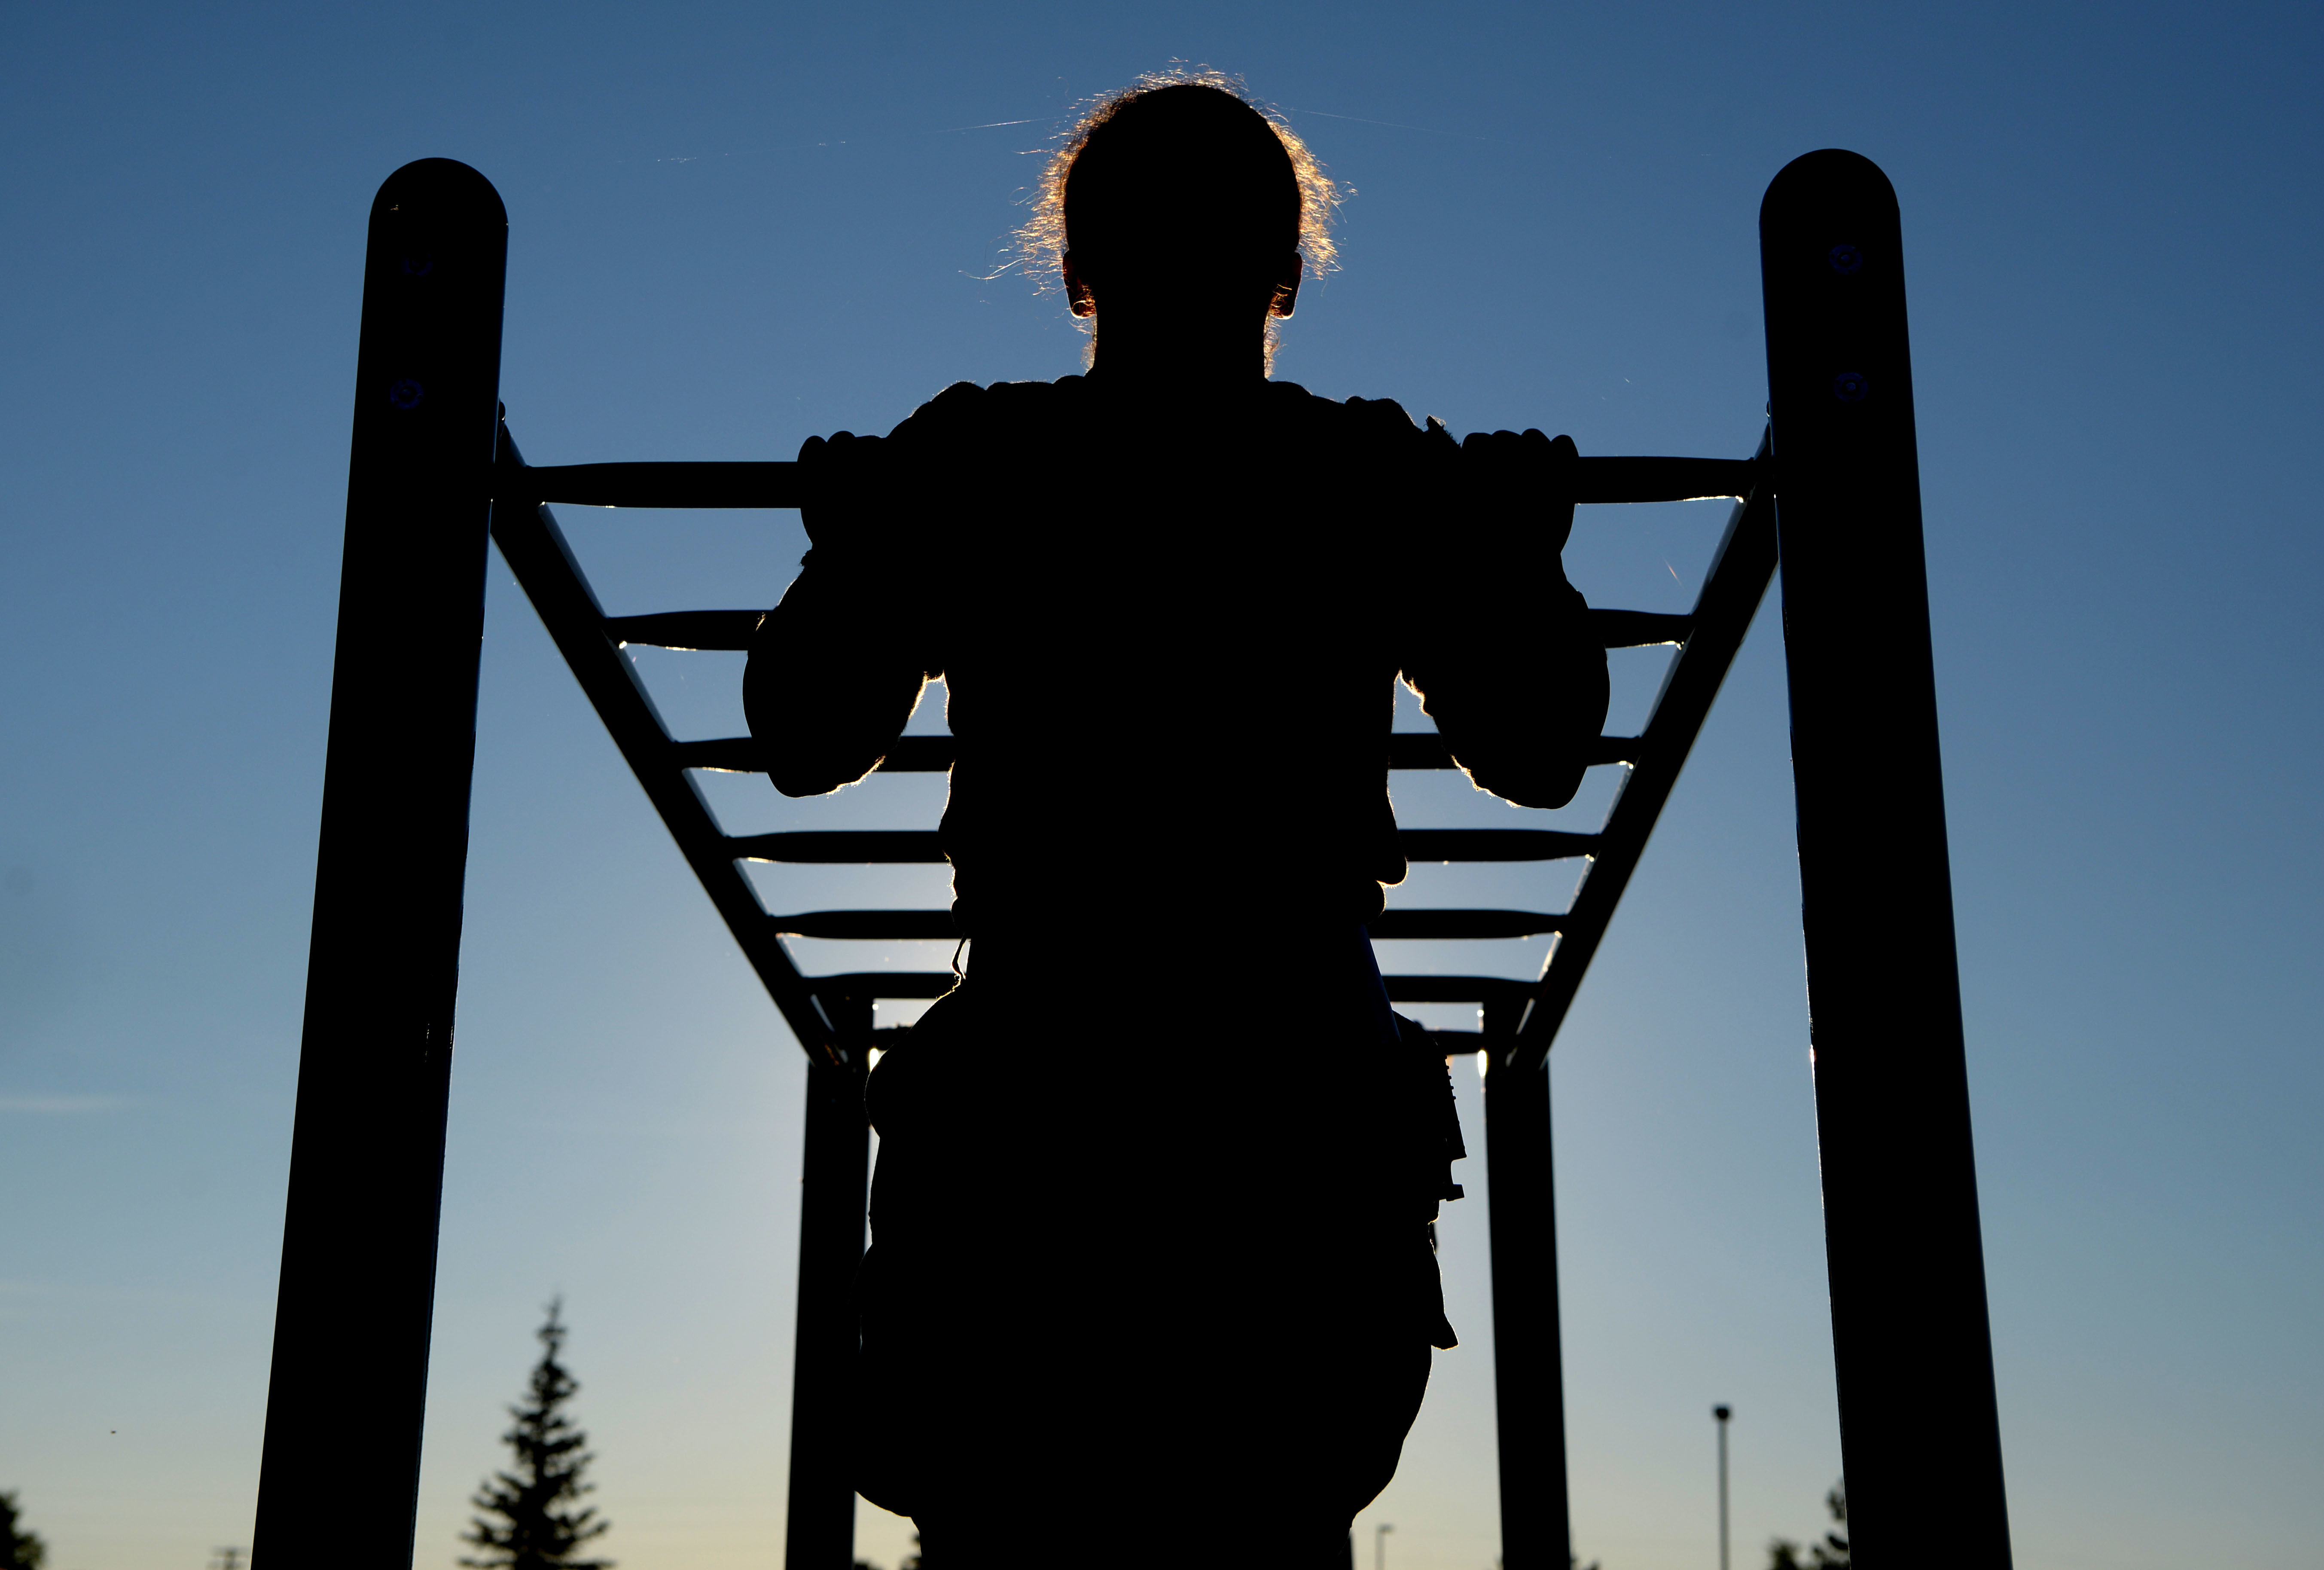 Airman 1st Class Alexandranell Soto, 354th Security Forces Squadron response force leader, completes a pullup during a special weapons and tactics physical training test at Eielson Air Force Base, Alaska, June 23. (Senior Airman Beaux Hebert/Air Fprce)